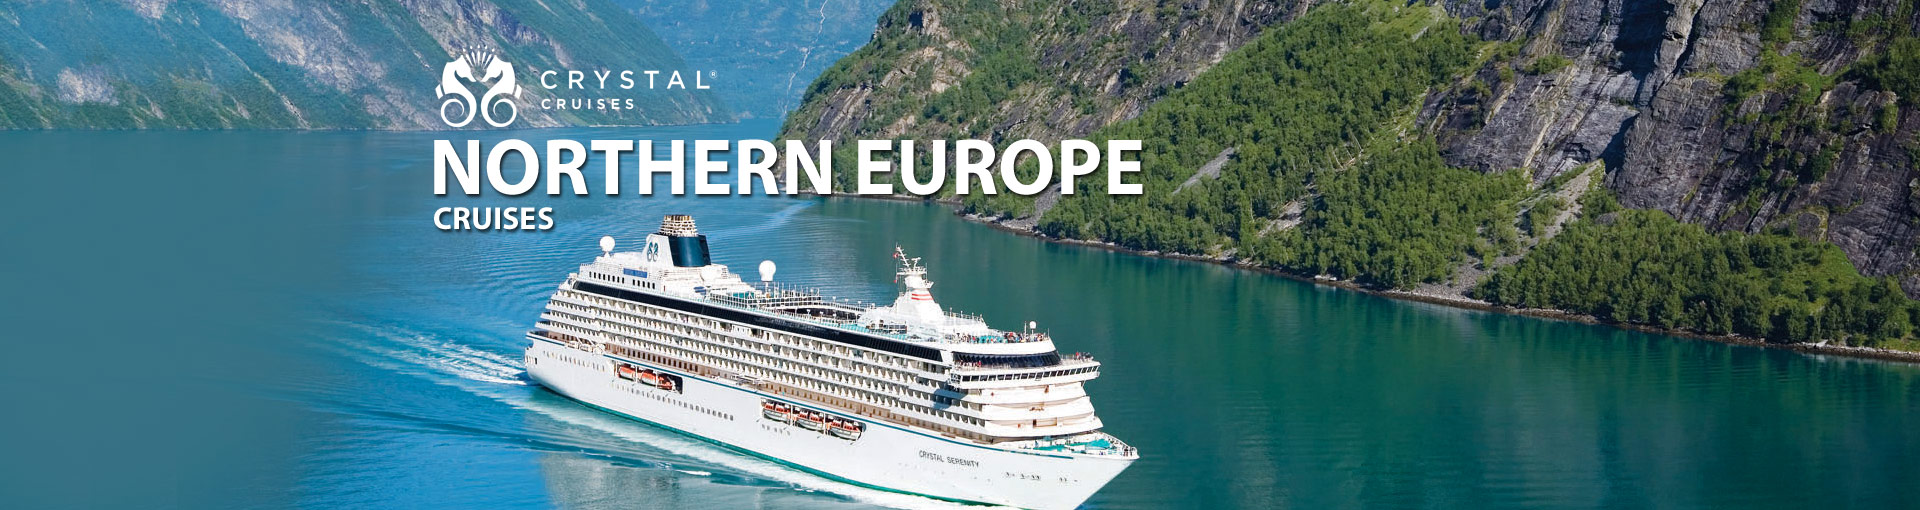 Crystal Northern Europe Cruises Luxury 2018 And 2019 Northern Europe Crystal Cruises The